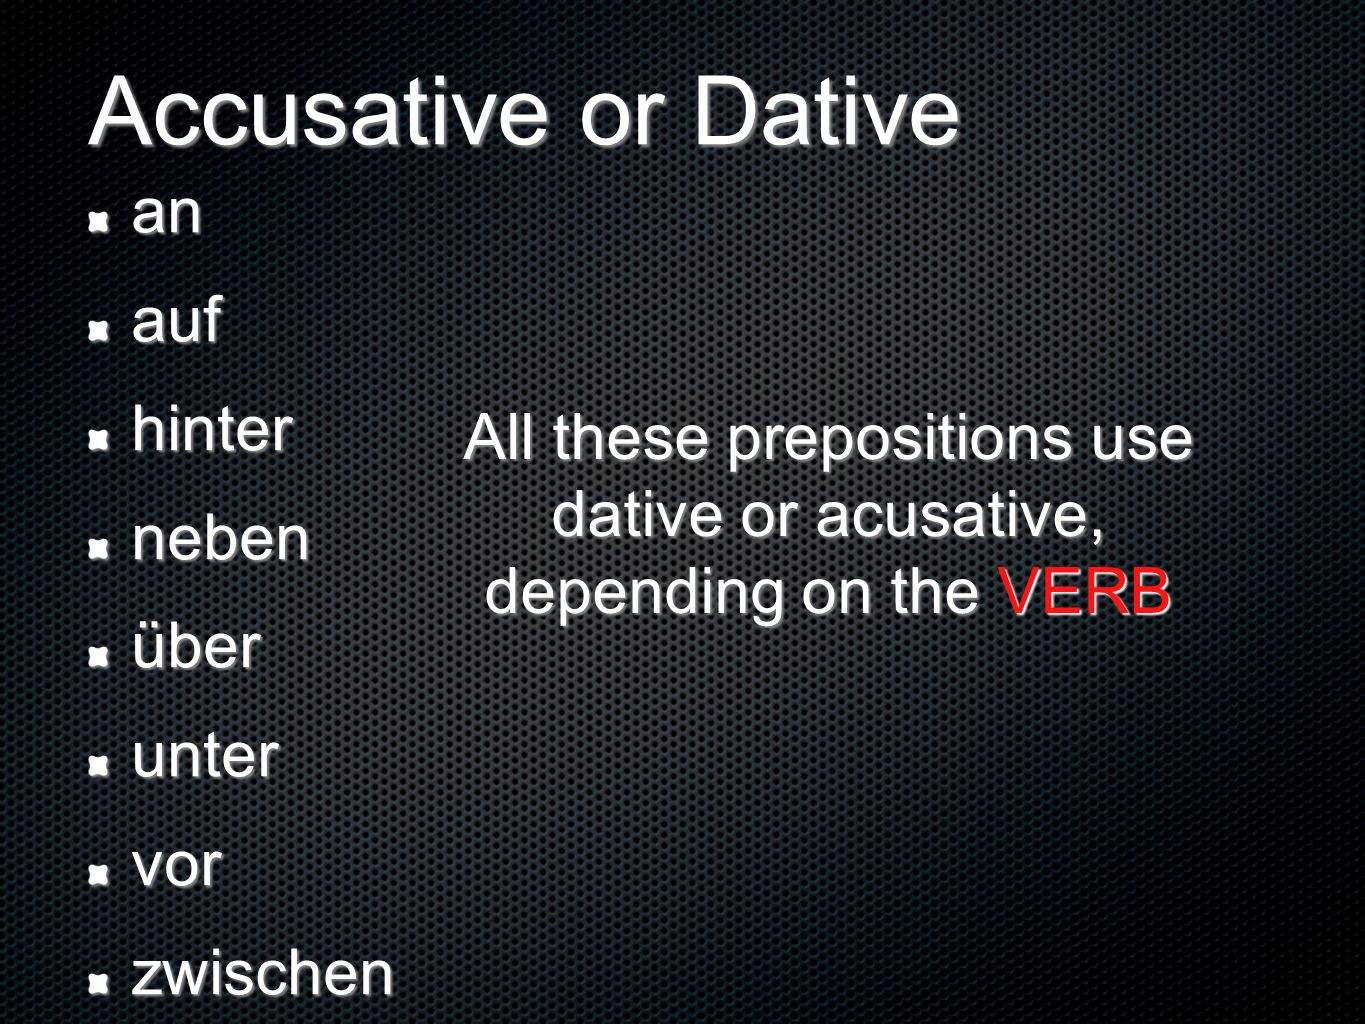 All these prepositions use dative or acusative, depending on the VERB